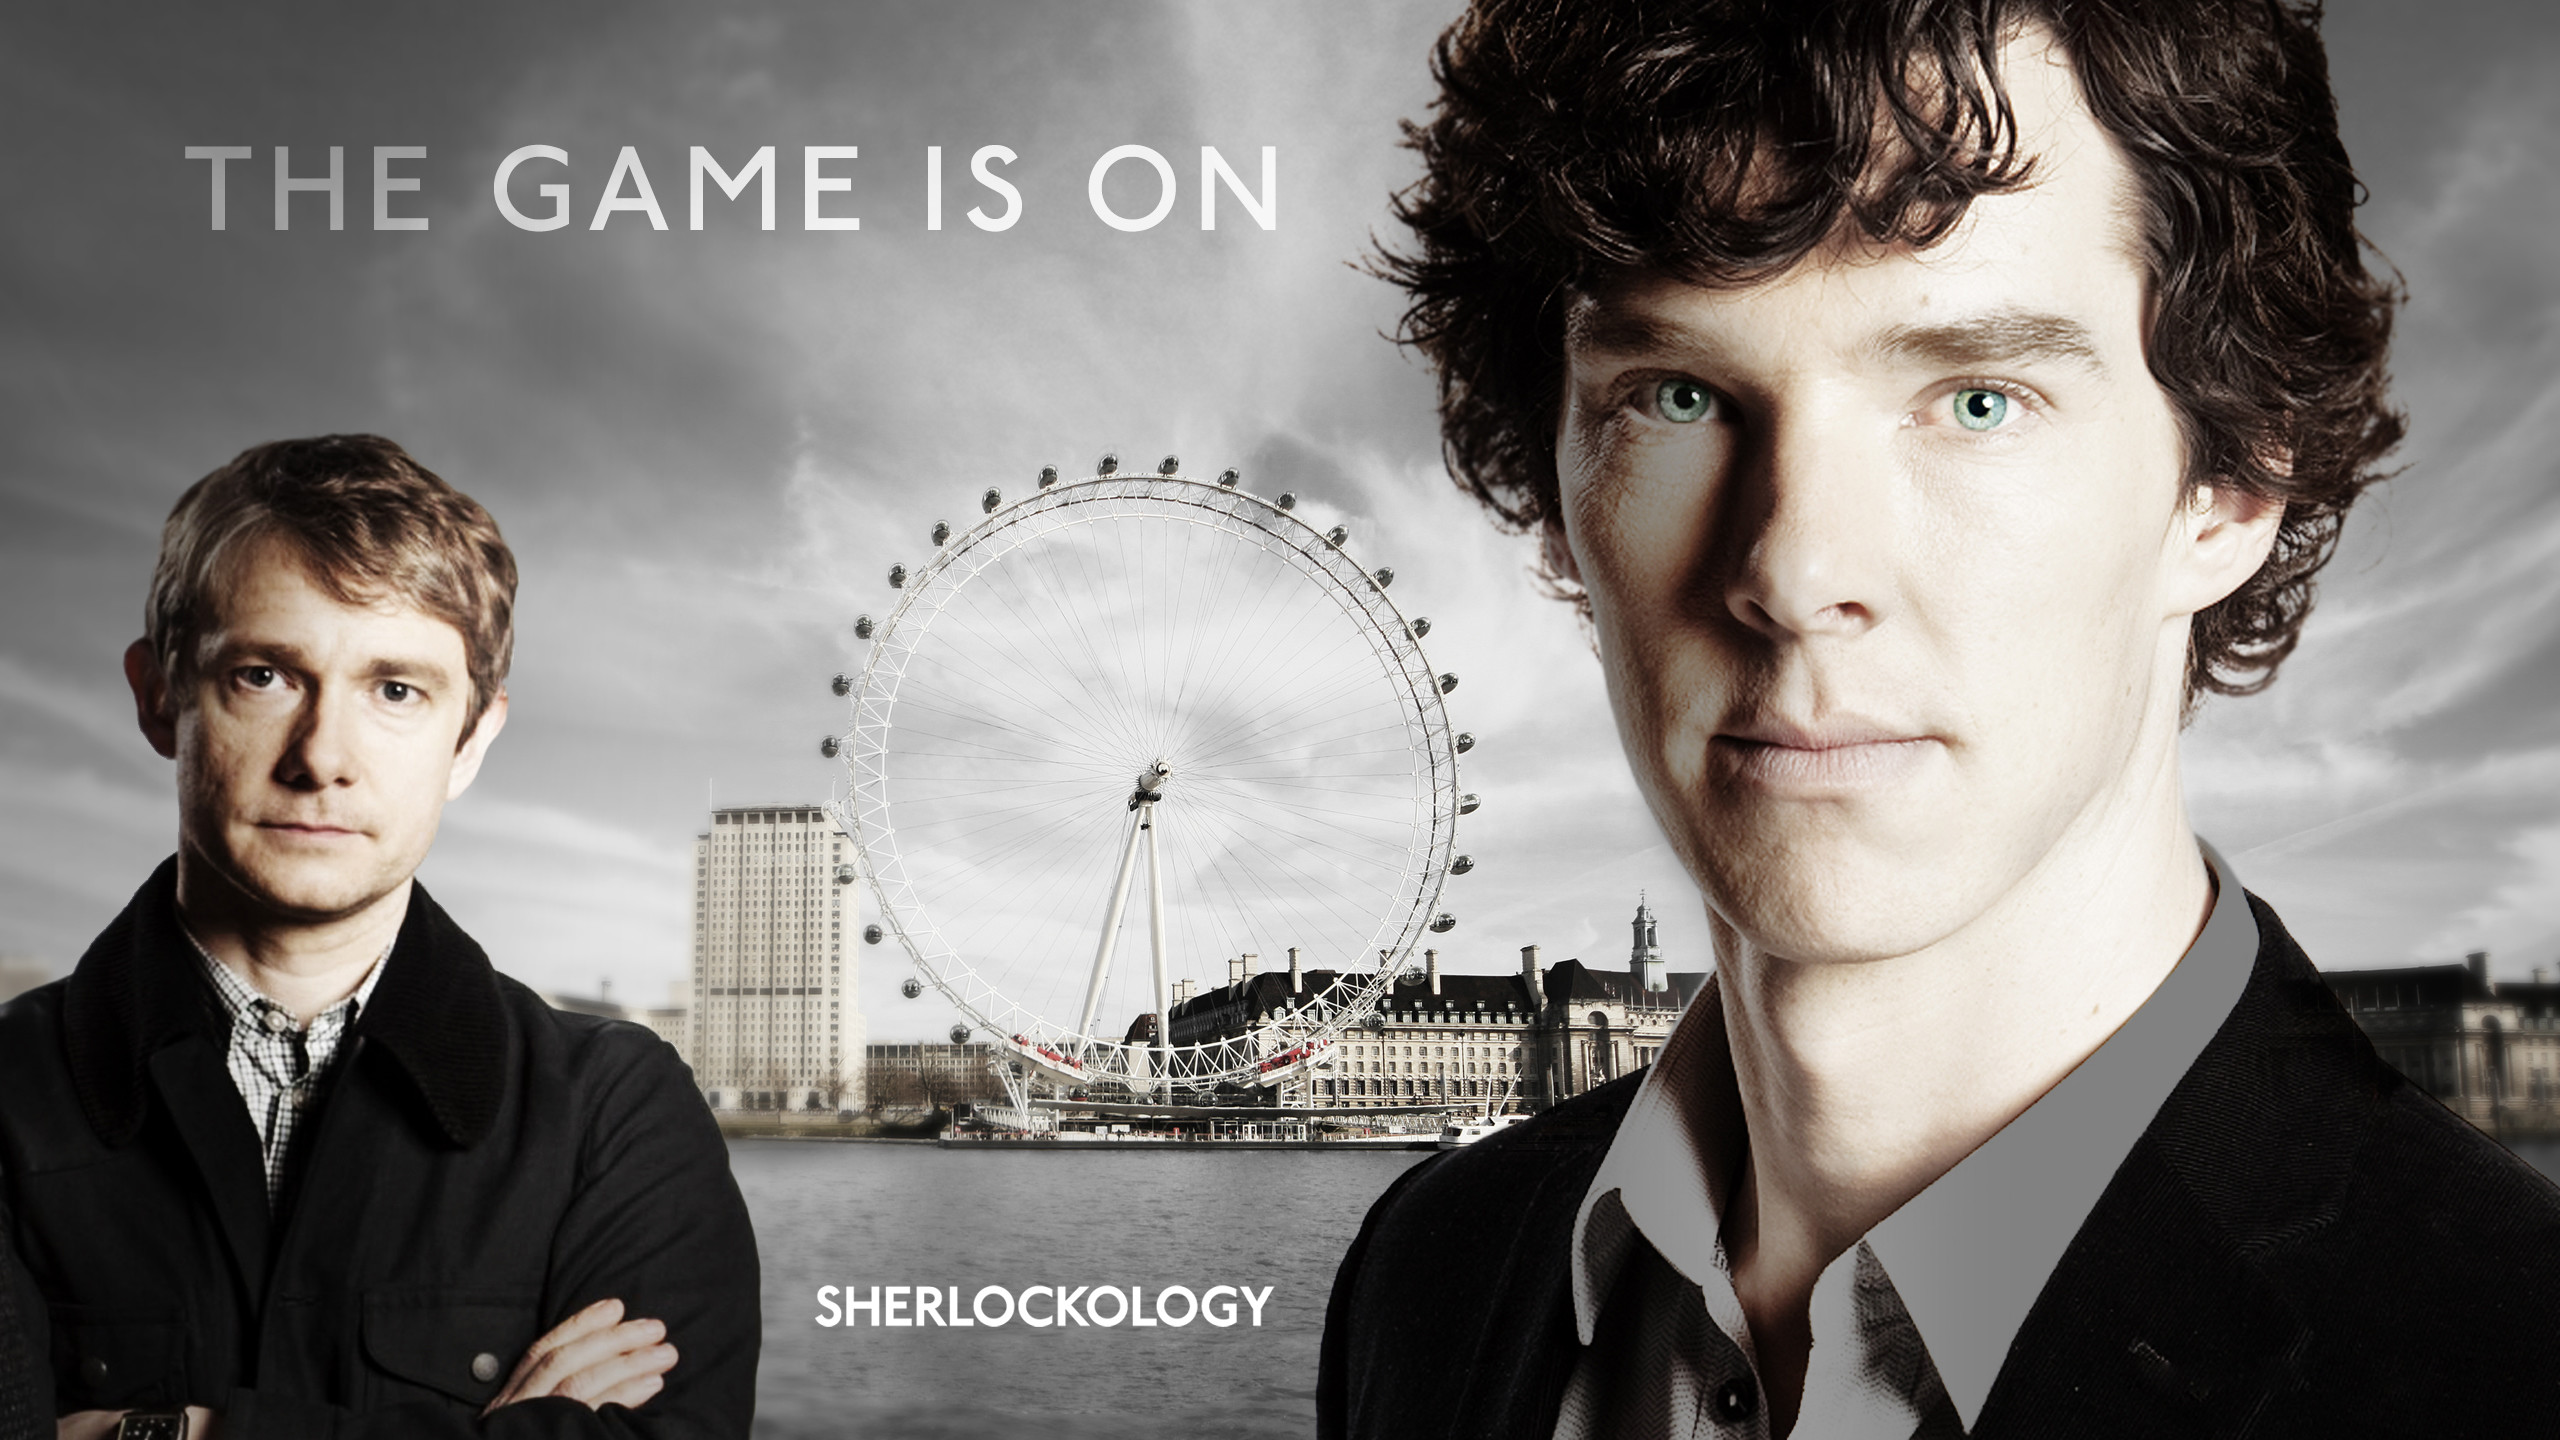 sherlock holmes movie free download for mobile